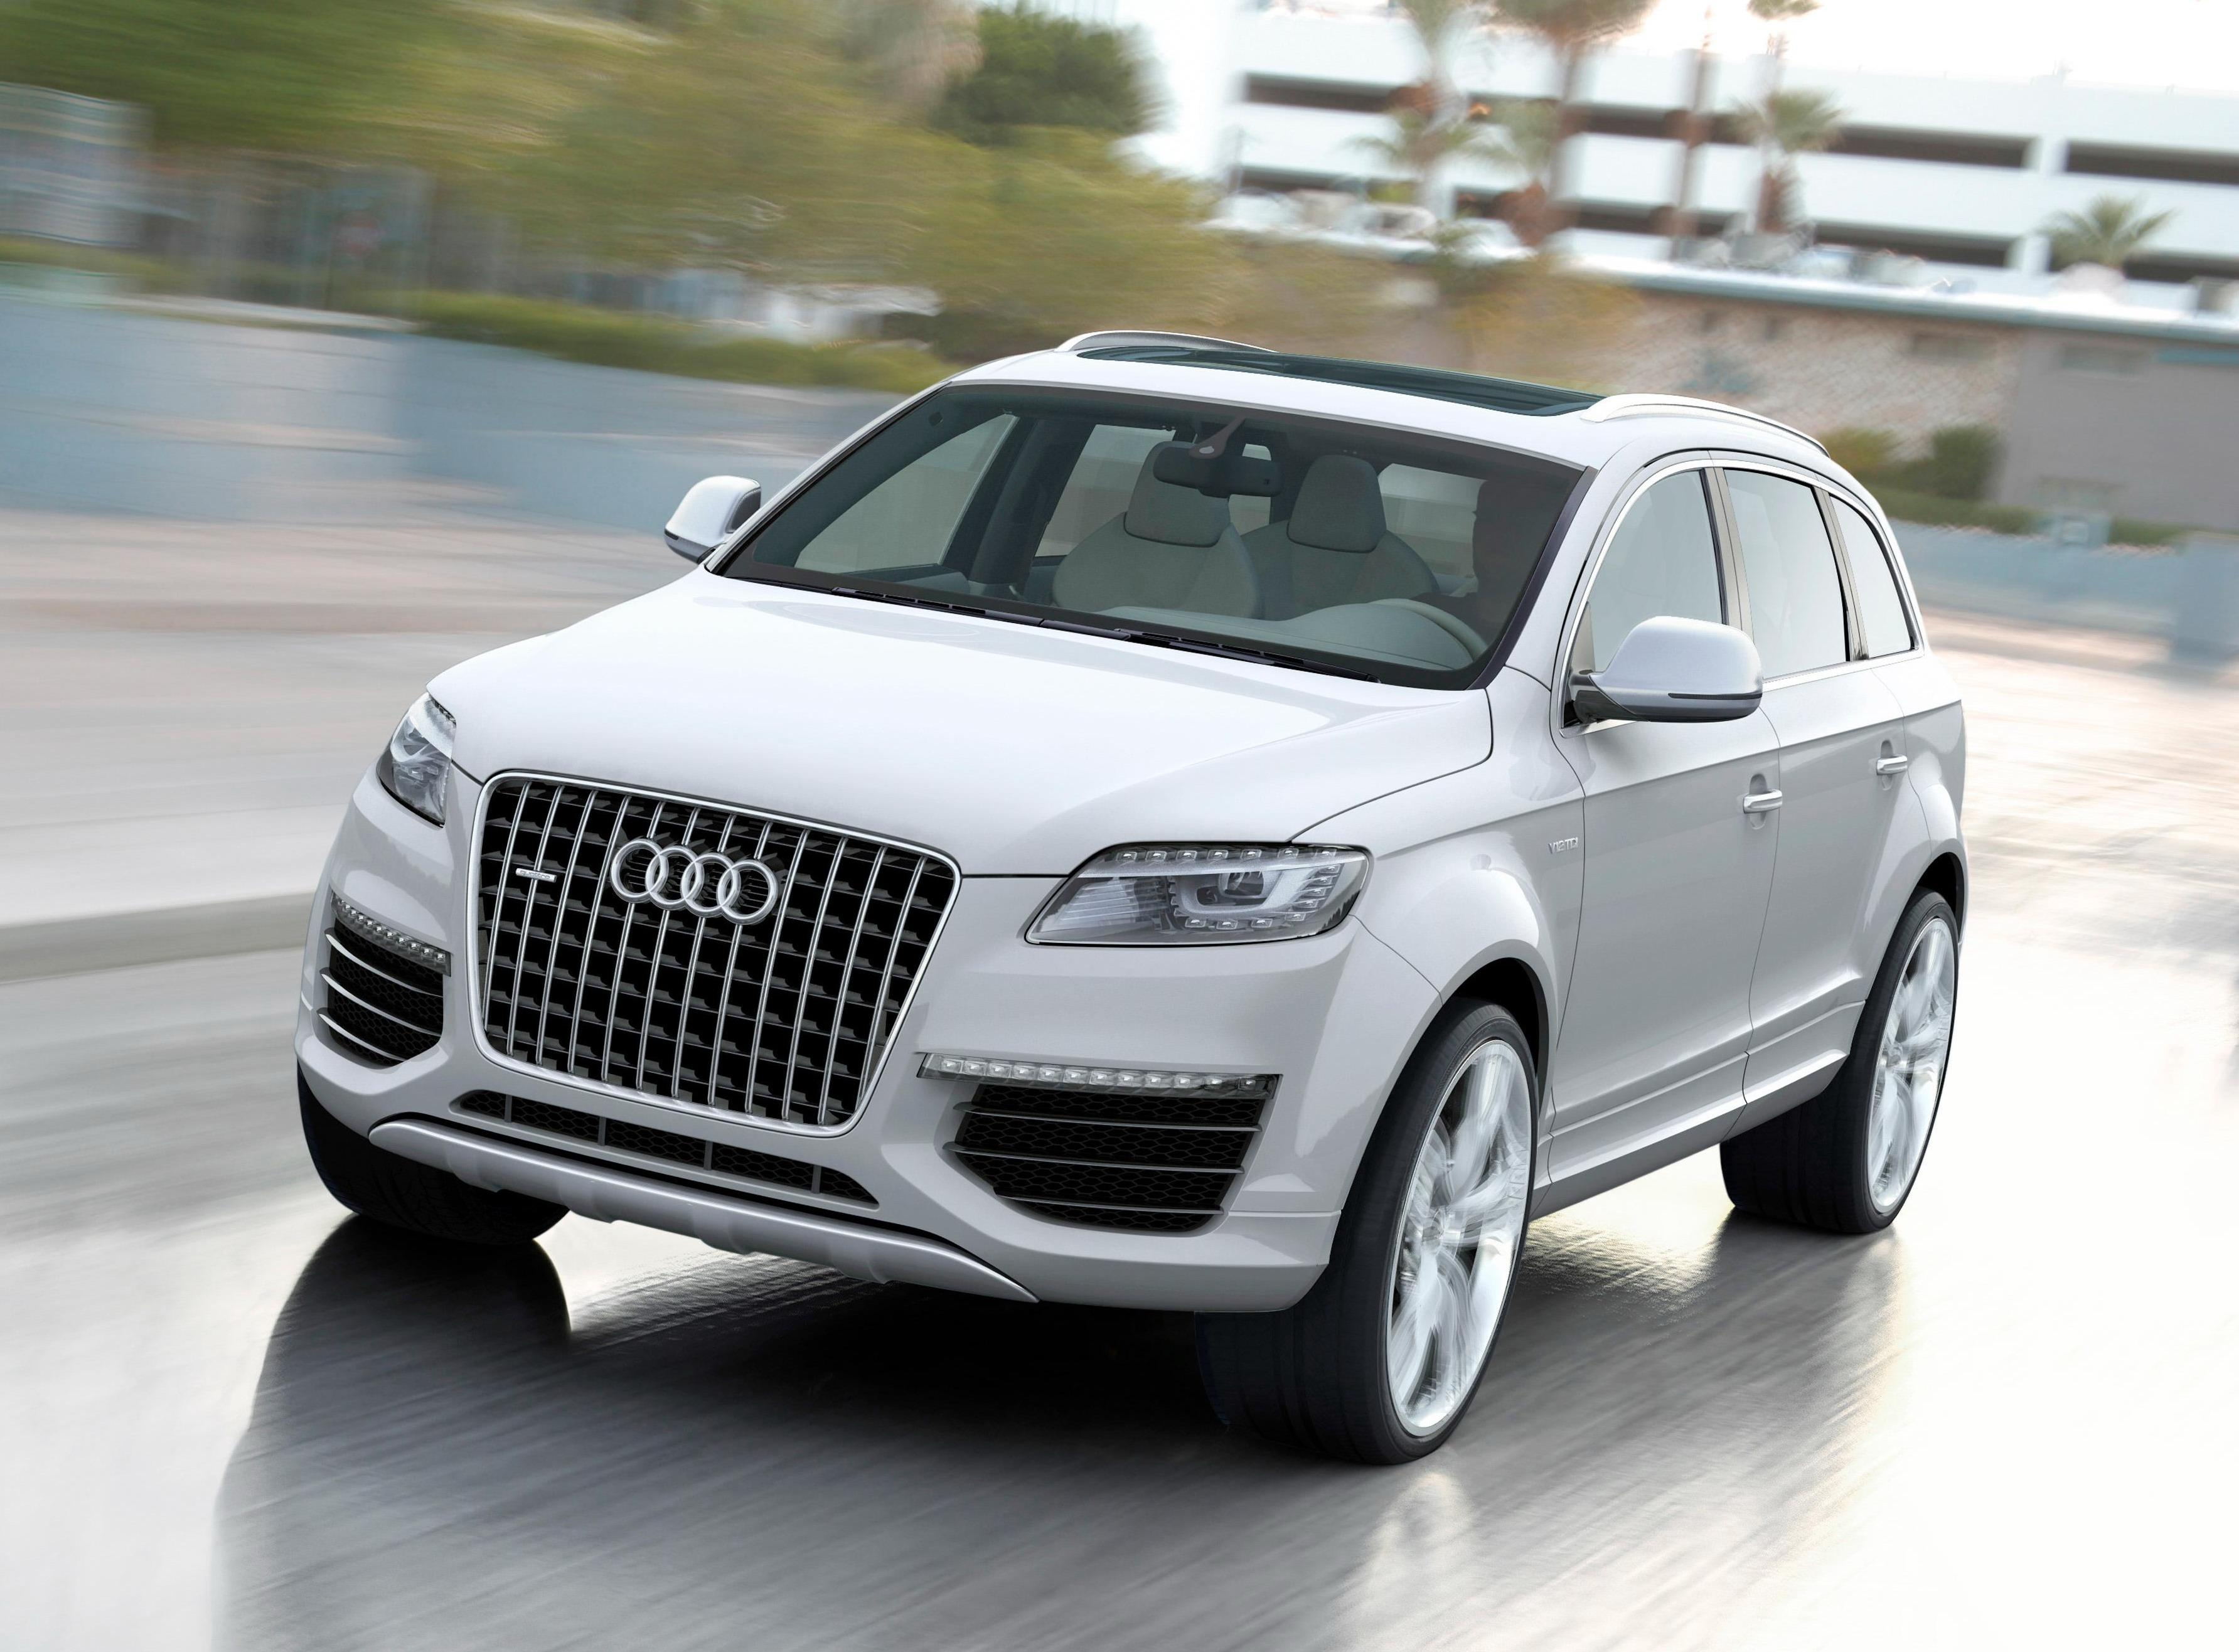 audi q7 v12 tdi coming in 2008 news top speed. Black Bedroom Furniture Sets. Home Design Ideas